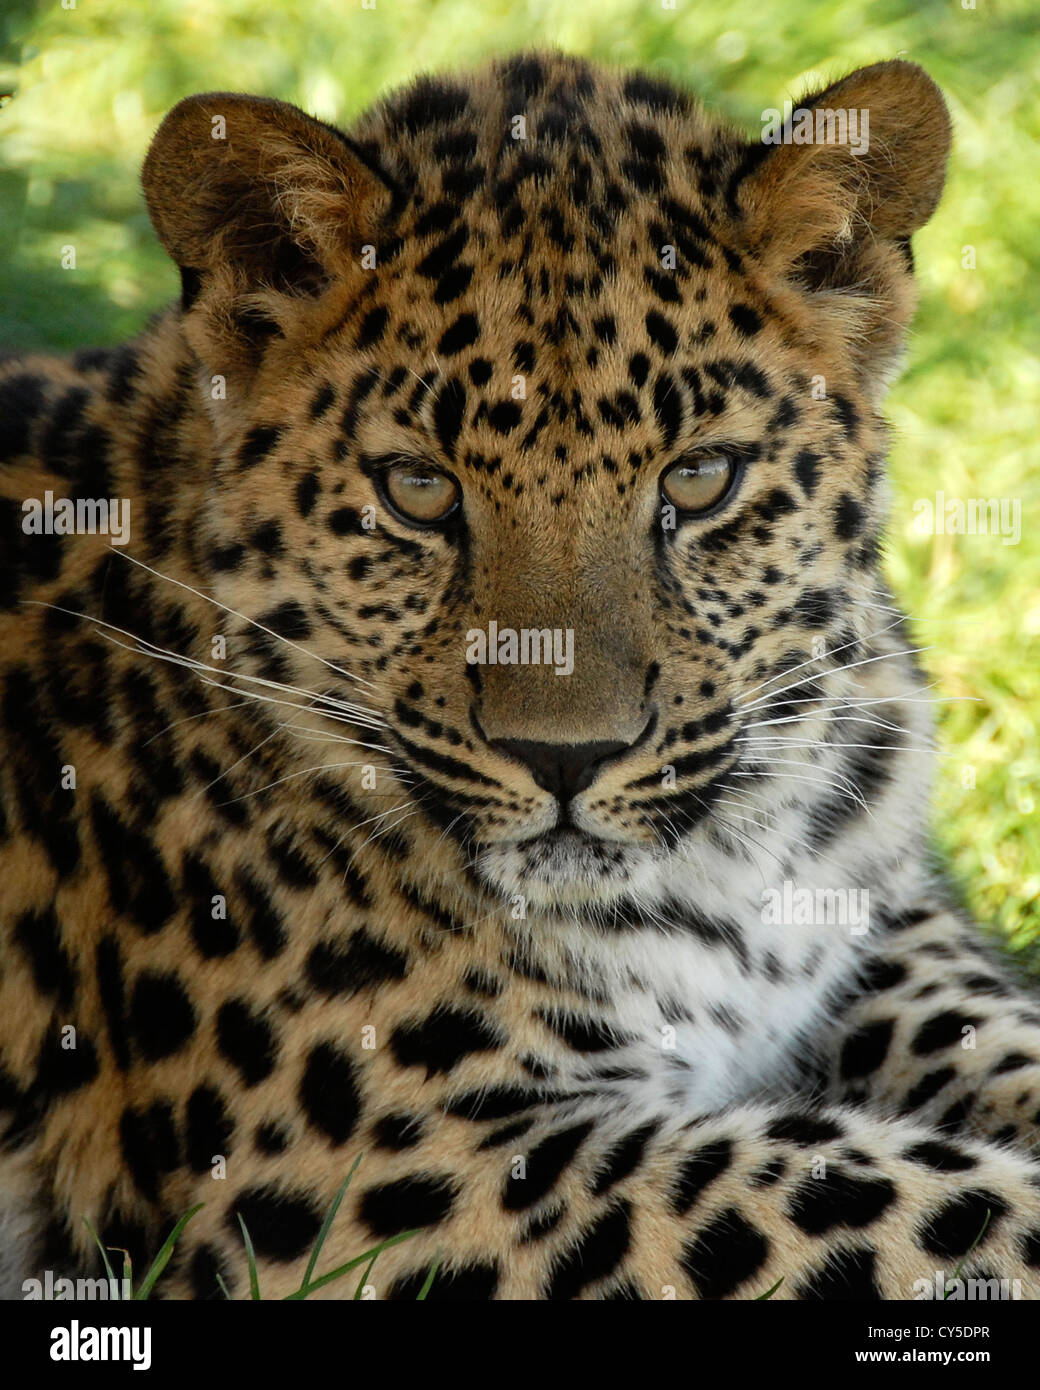 Close up of young Amur Leopard looking towards the camera - Stock Image